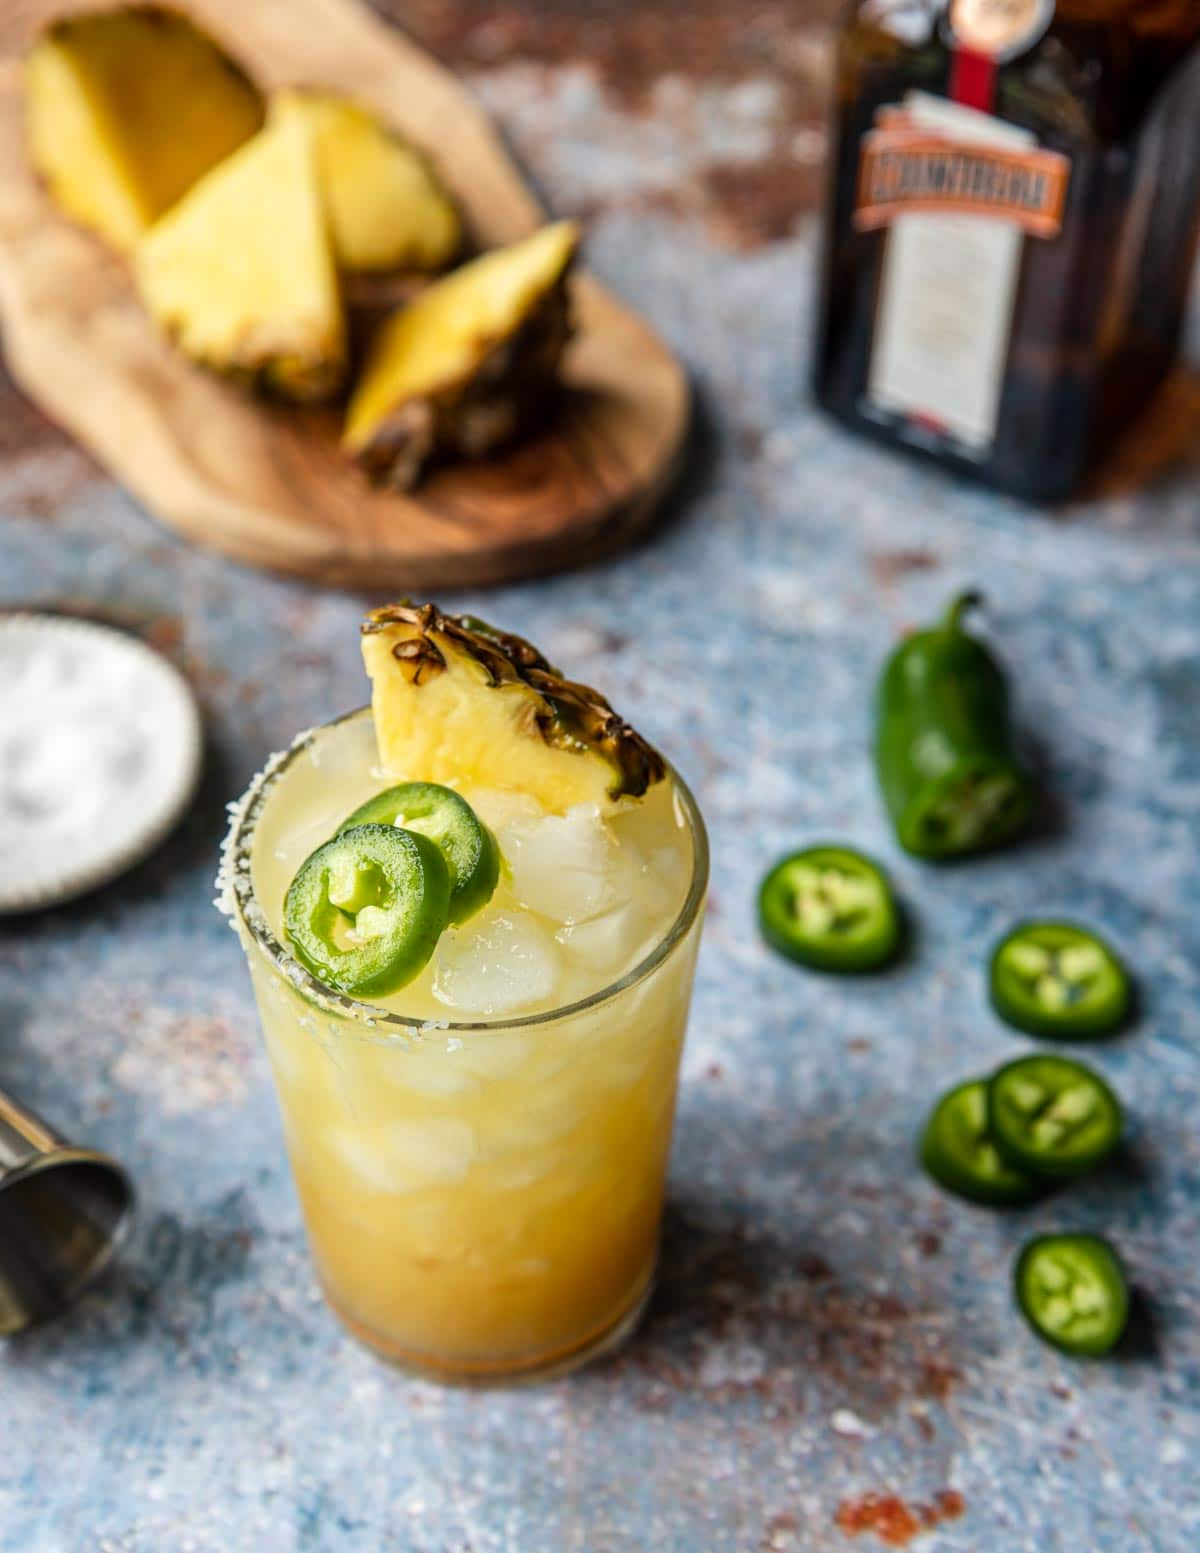 a glass of pineapple jalapeno margarita garnished with pineapple and jalapeno